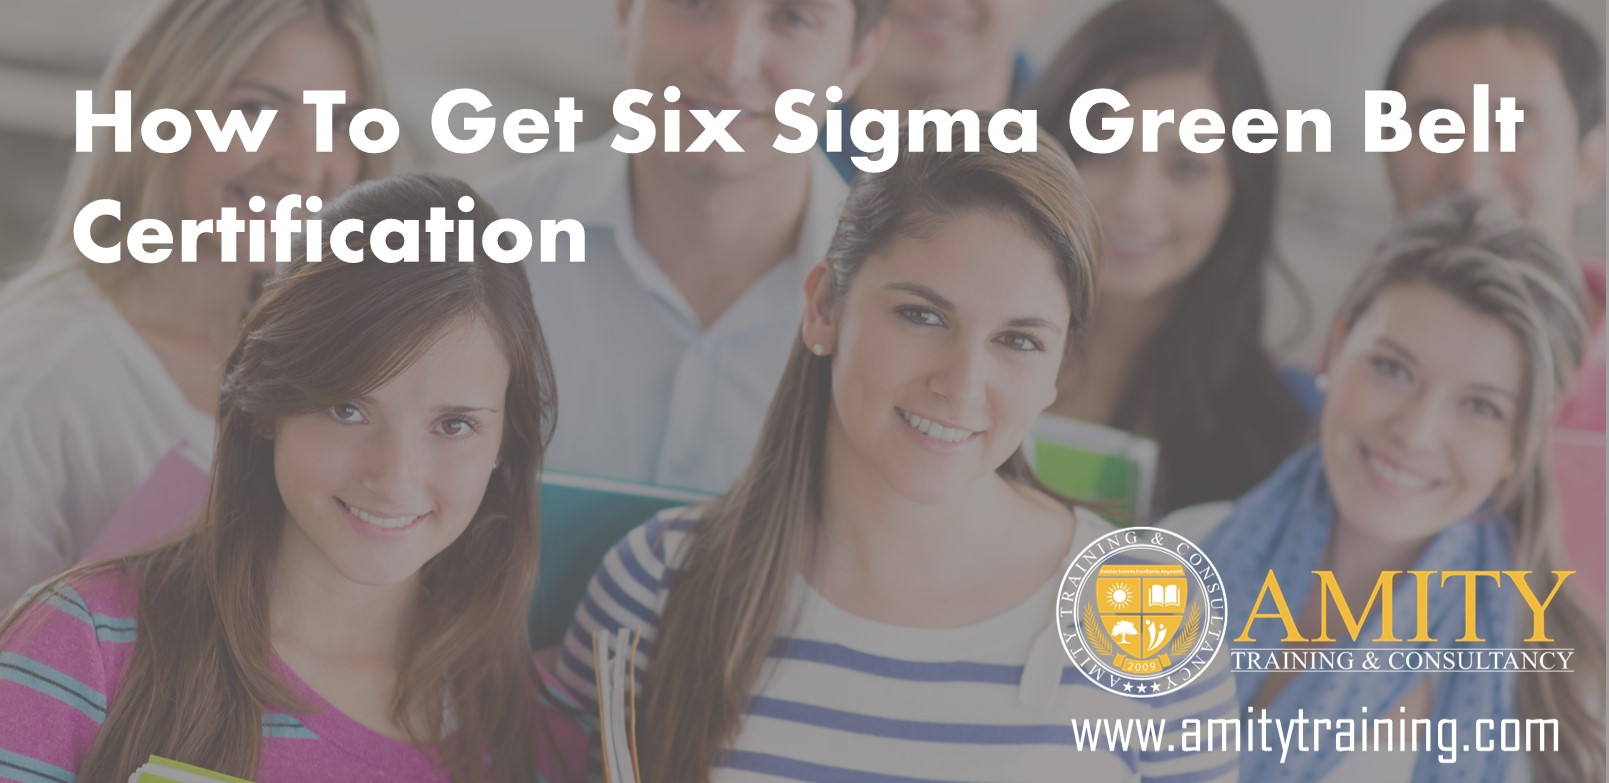 How to get six sigma green belt certification2g how to get six sigma green belt certification view larger image 1betcityfo Image collections